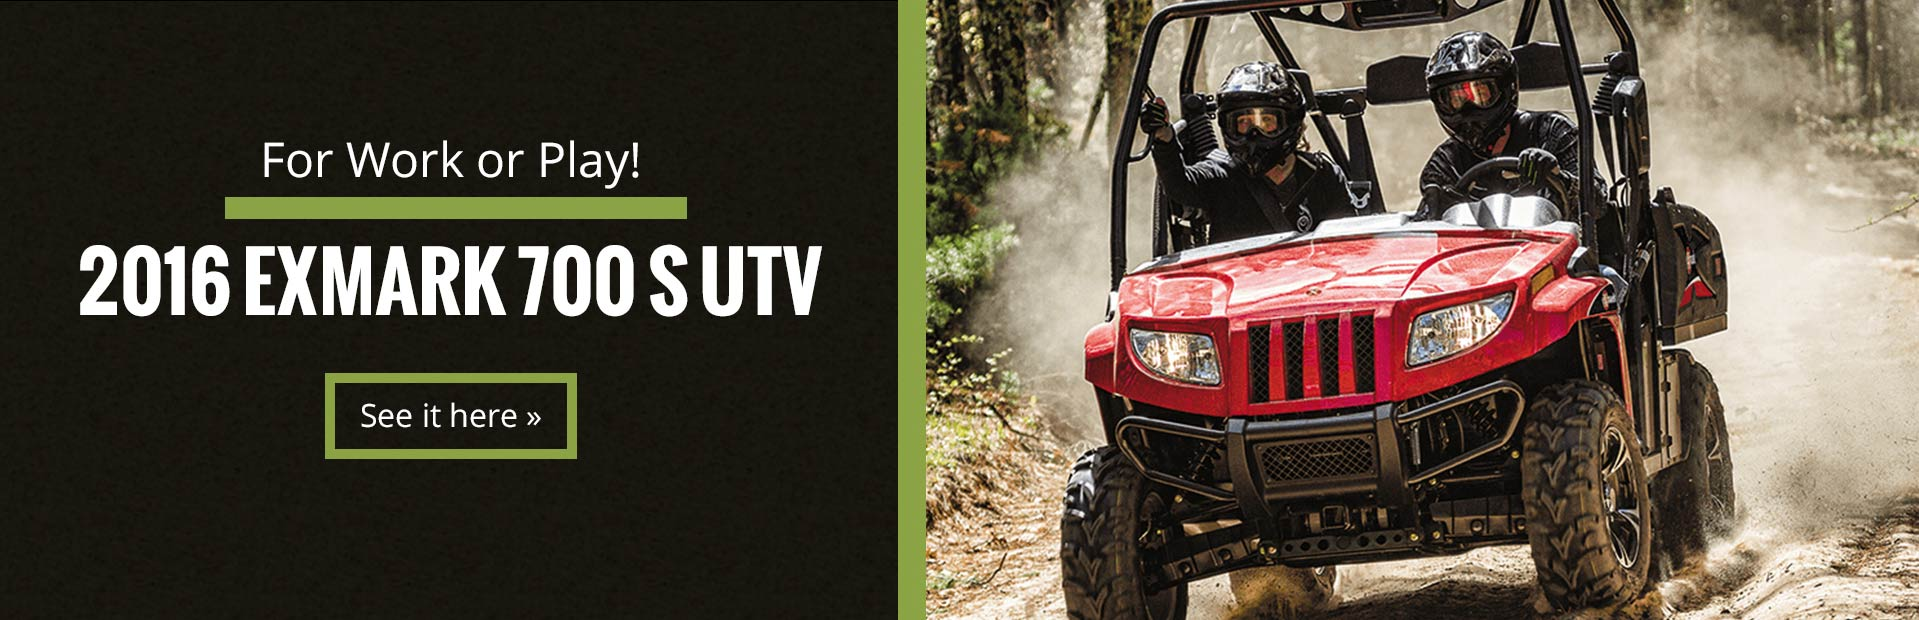 2016 Exmark 700 S UTV: Click here to view the model.